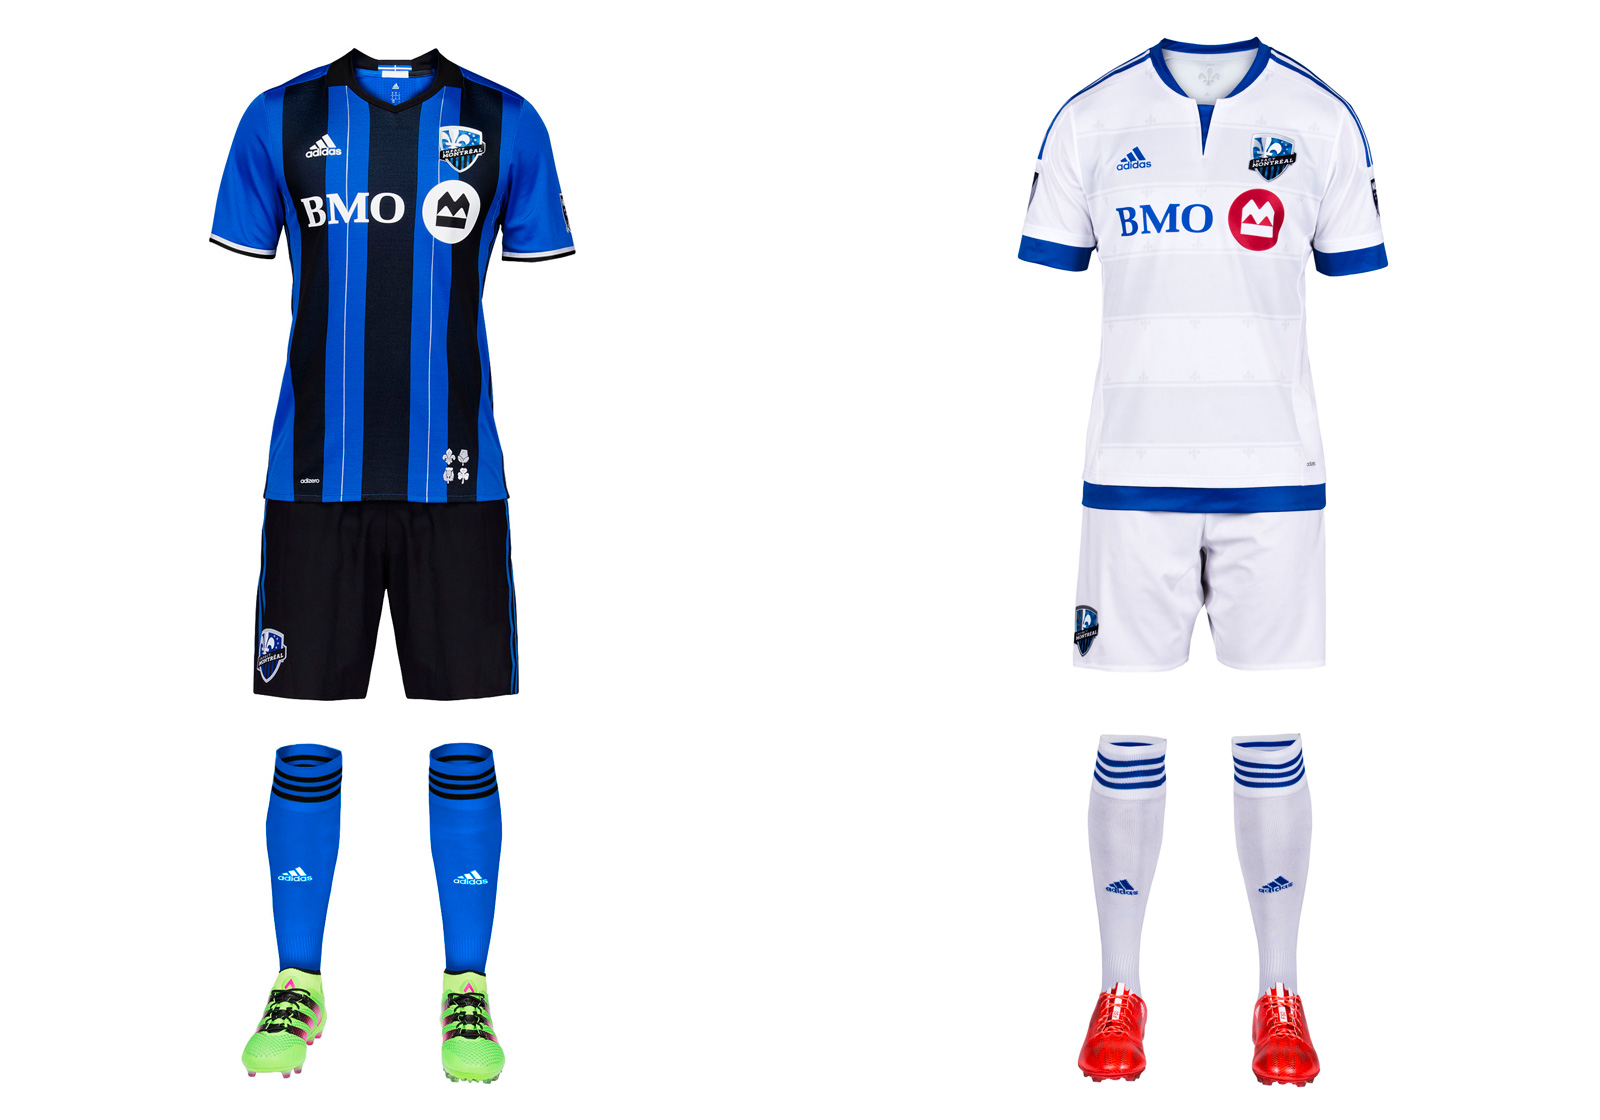 Finally! We never could understand why the Impact (launched in 1993) didn't opt for their old school blue and black stripes when moving to MLS in 2012. There was history with the plain blue primary as well, but in the end it was just another anonymous monochromatic uniform in a league full of them. The stripes returned as a popular third option in 2013 and now have been elevated to their proper place as Montreal's home kit. Black shorts, blue socks and silver highlights round out one of MLS's most distinctive looks. Maybe the Impact can wear those shorts and socks on the road as well.